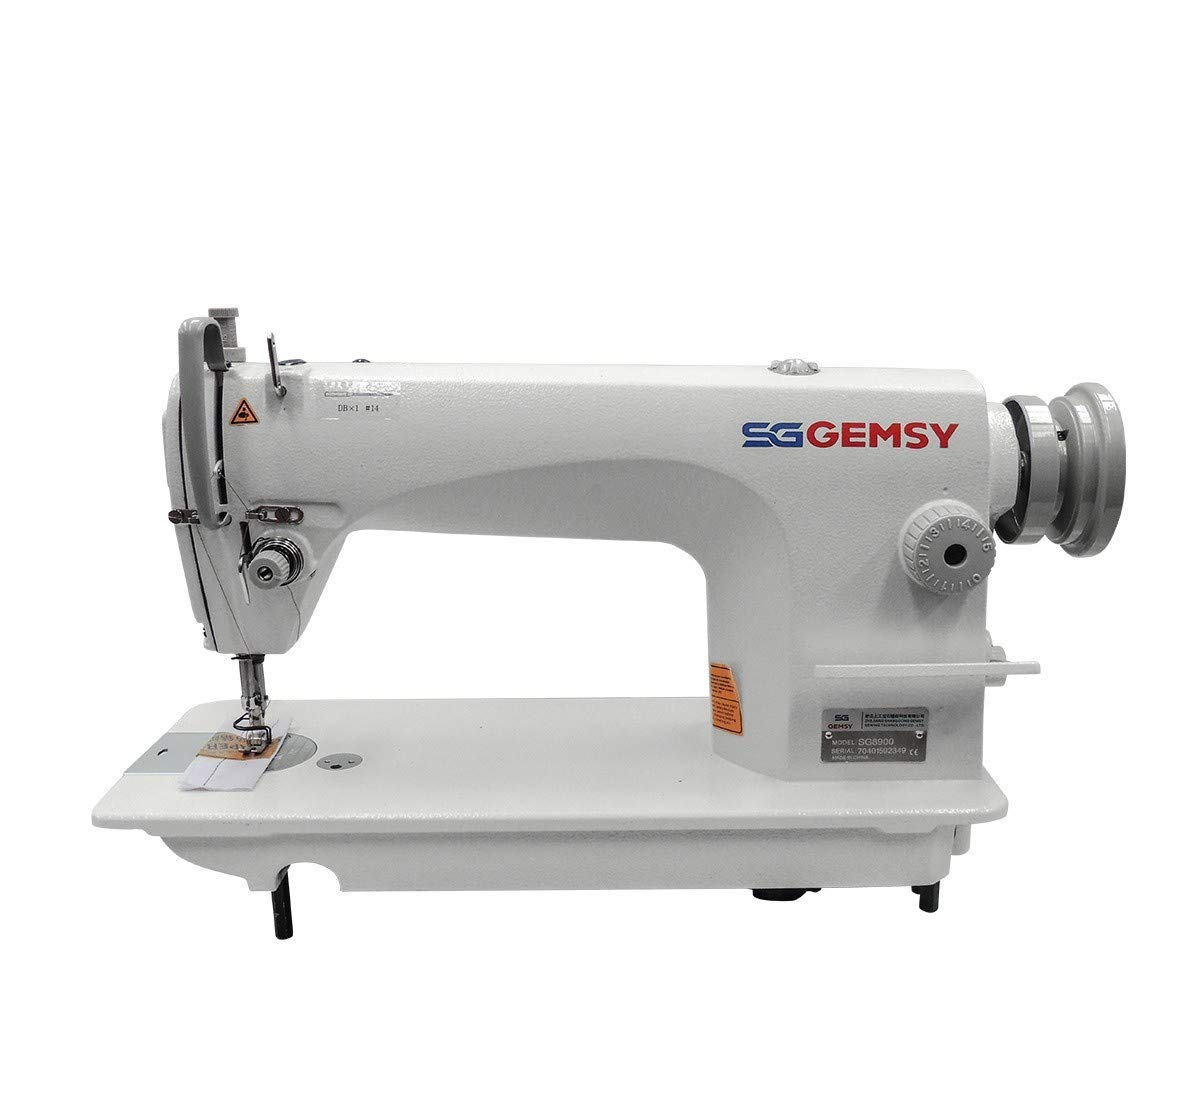 Gemsy Single Needle Industrial Sewing Machine SG8900 Complete Set ...